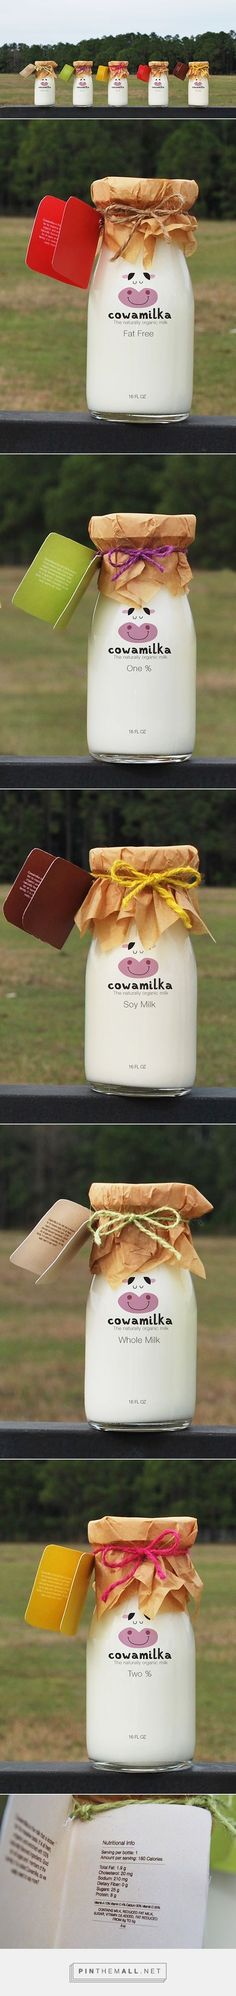 Adorable cow milk packaging and logo design!